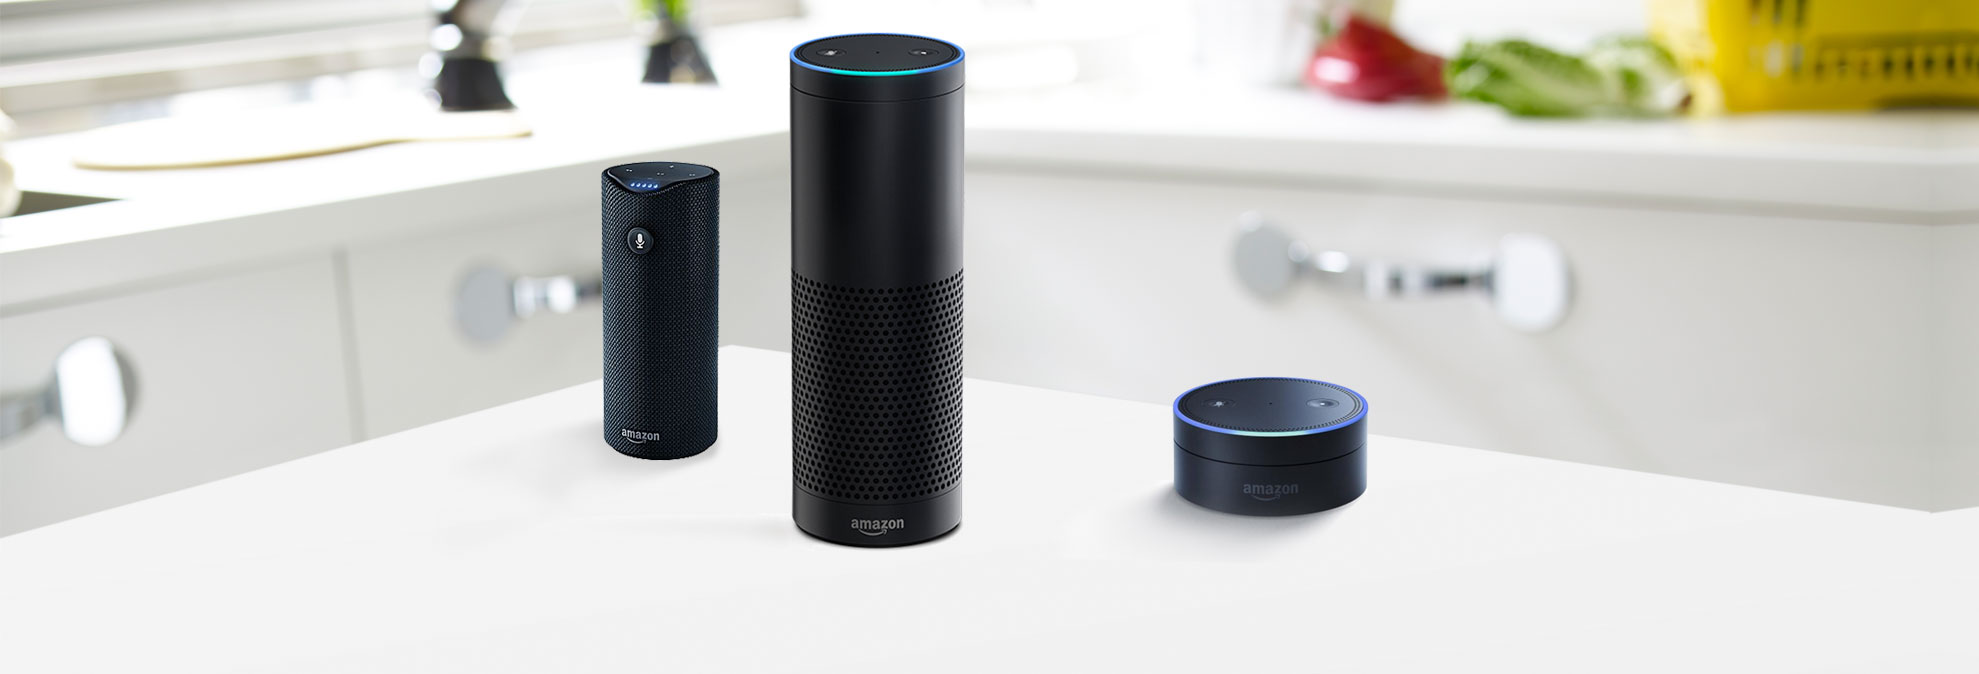 Amazon Echo products face competition from Google Home.